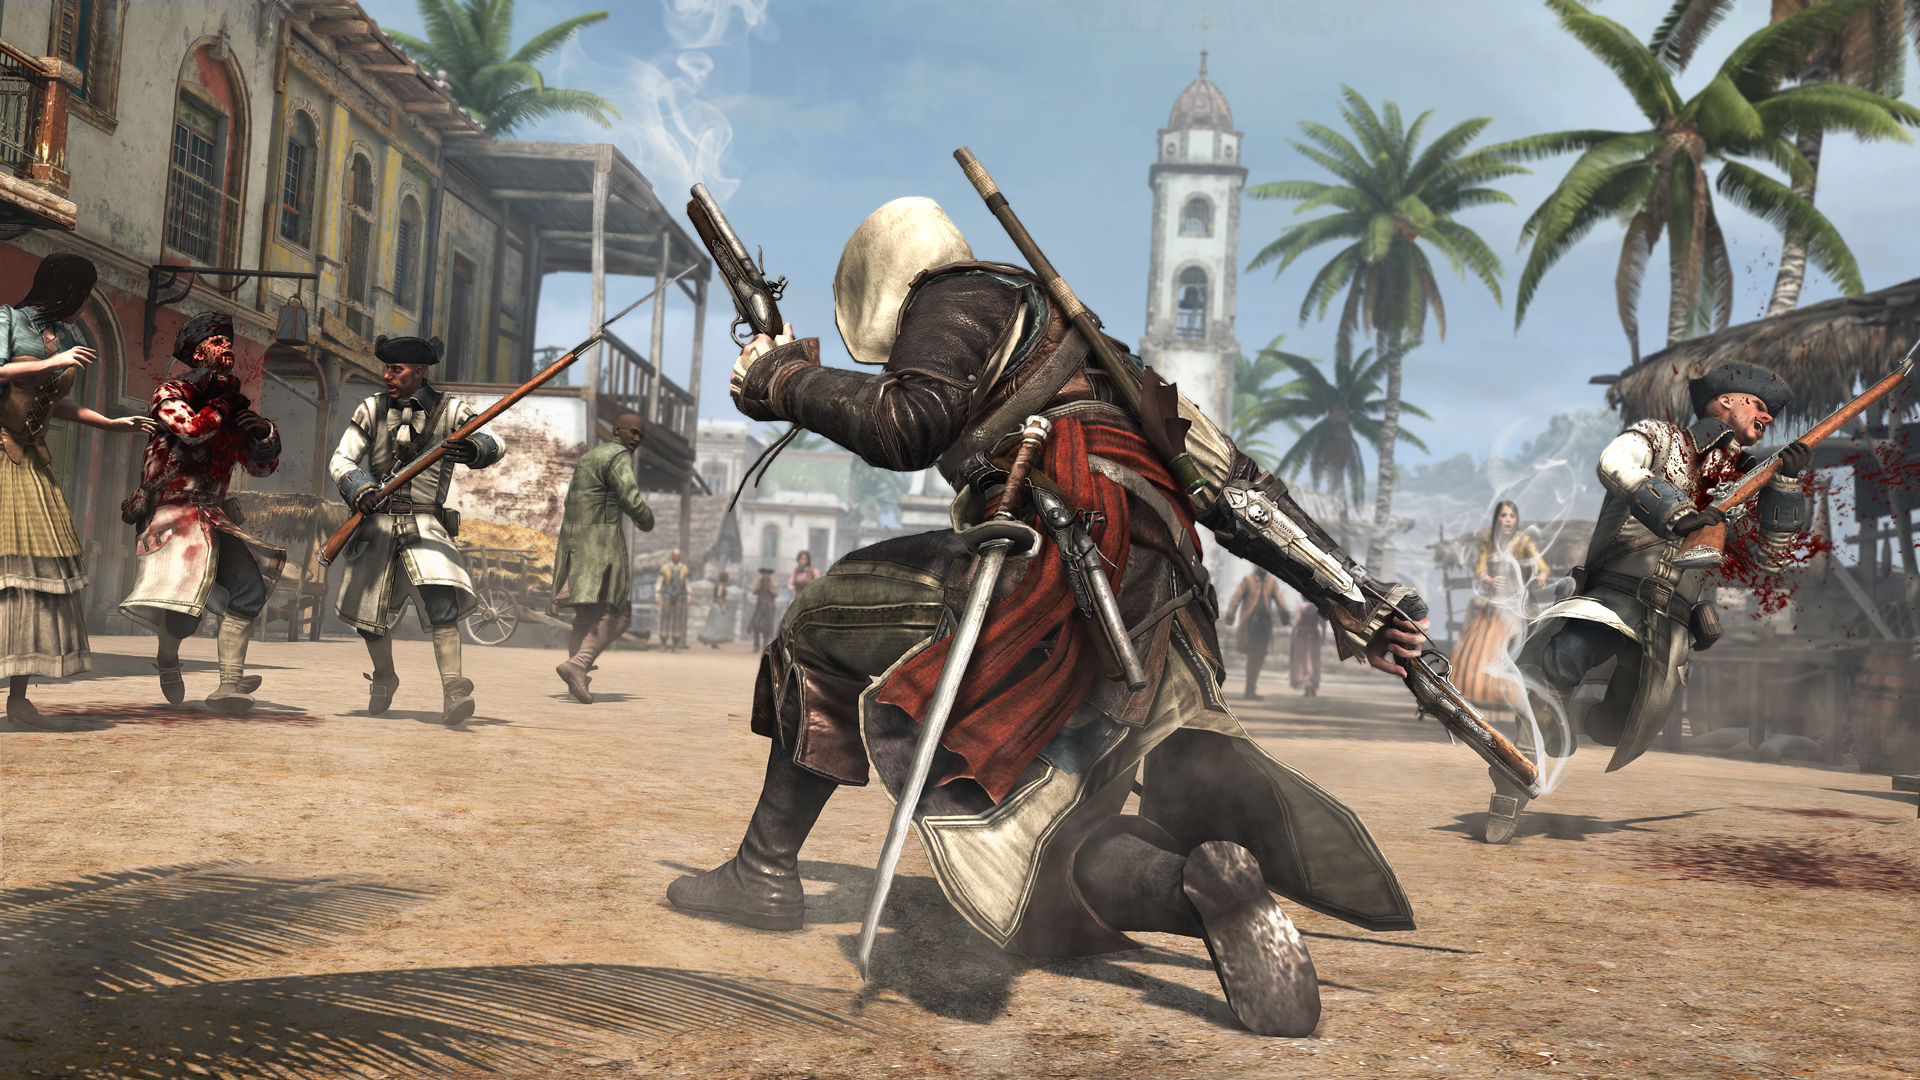 Assassins Creed Iv Black Flag Wallpaper 8 Wallpapersbq